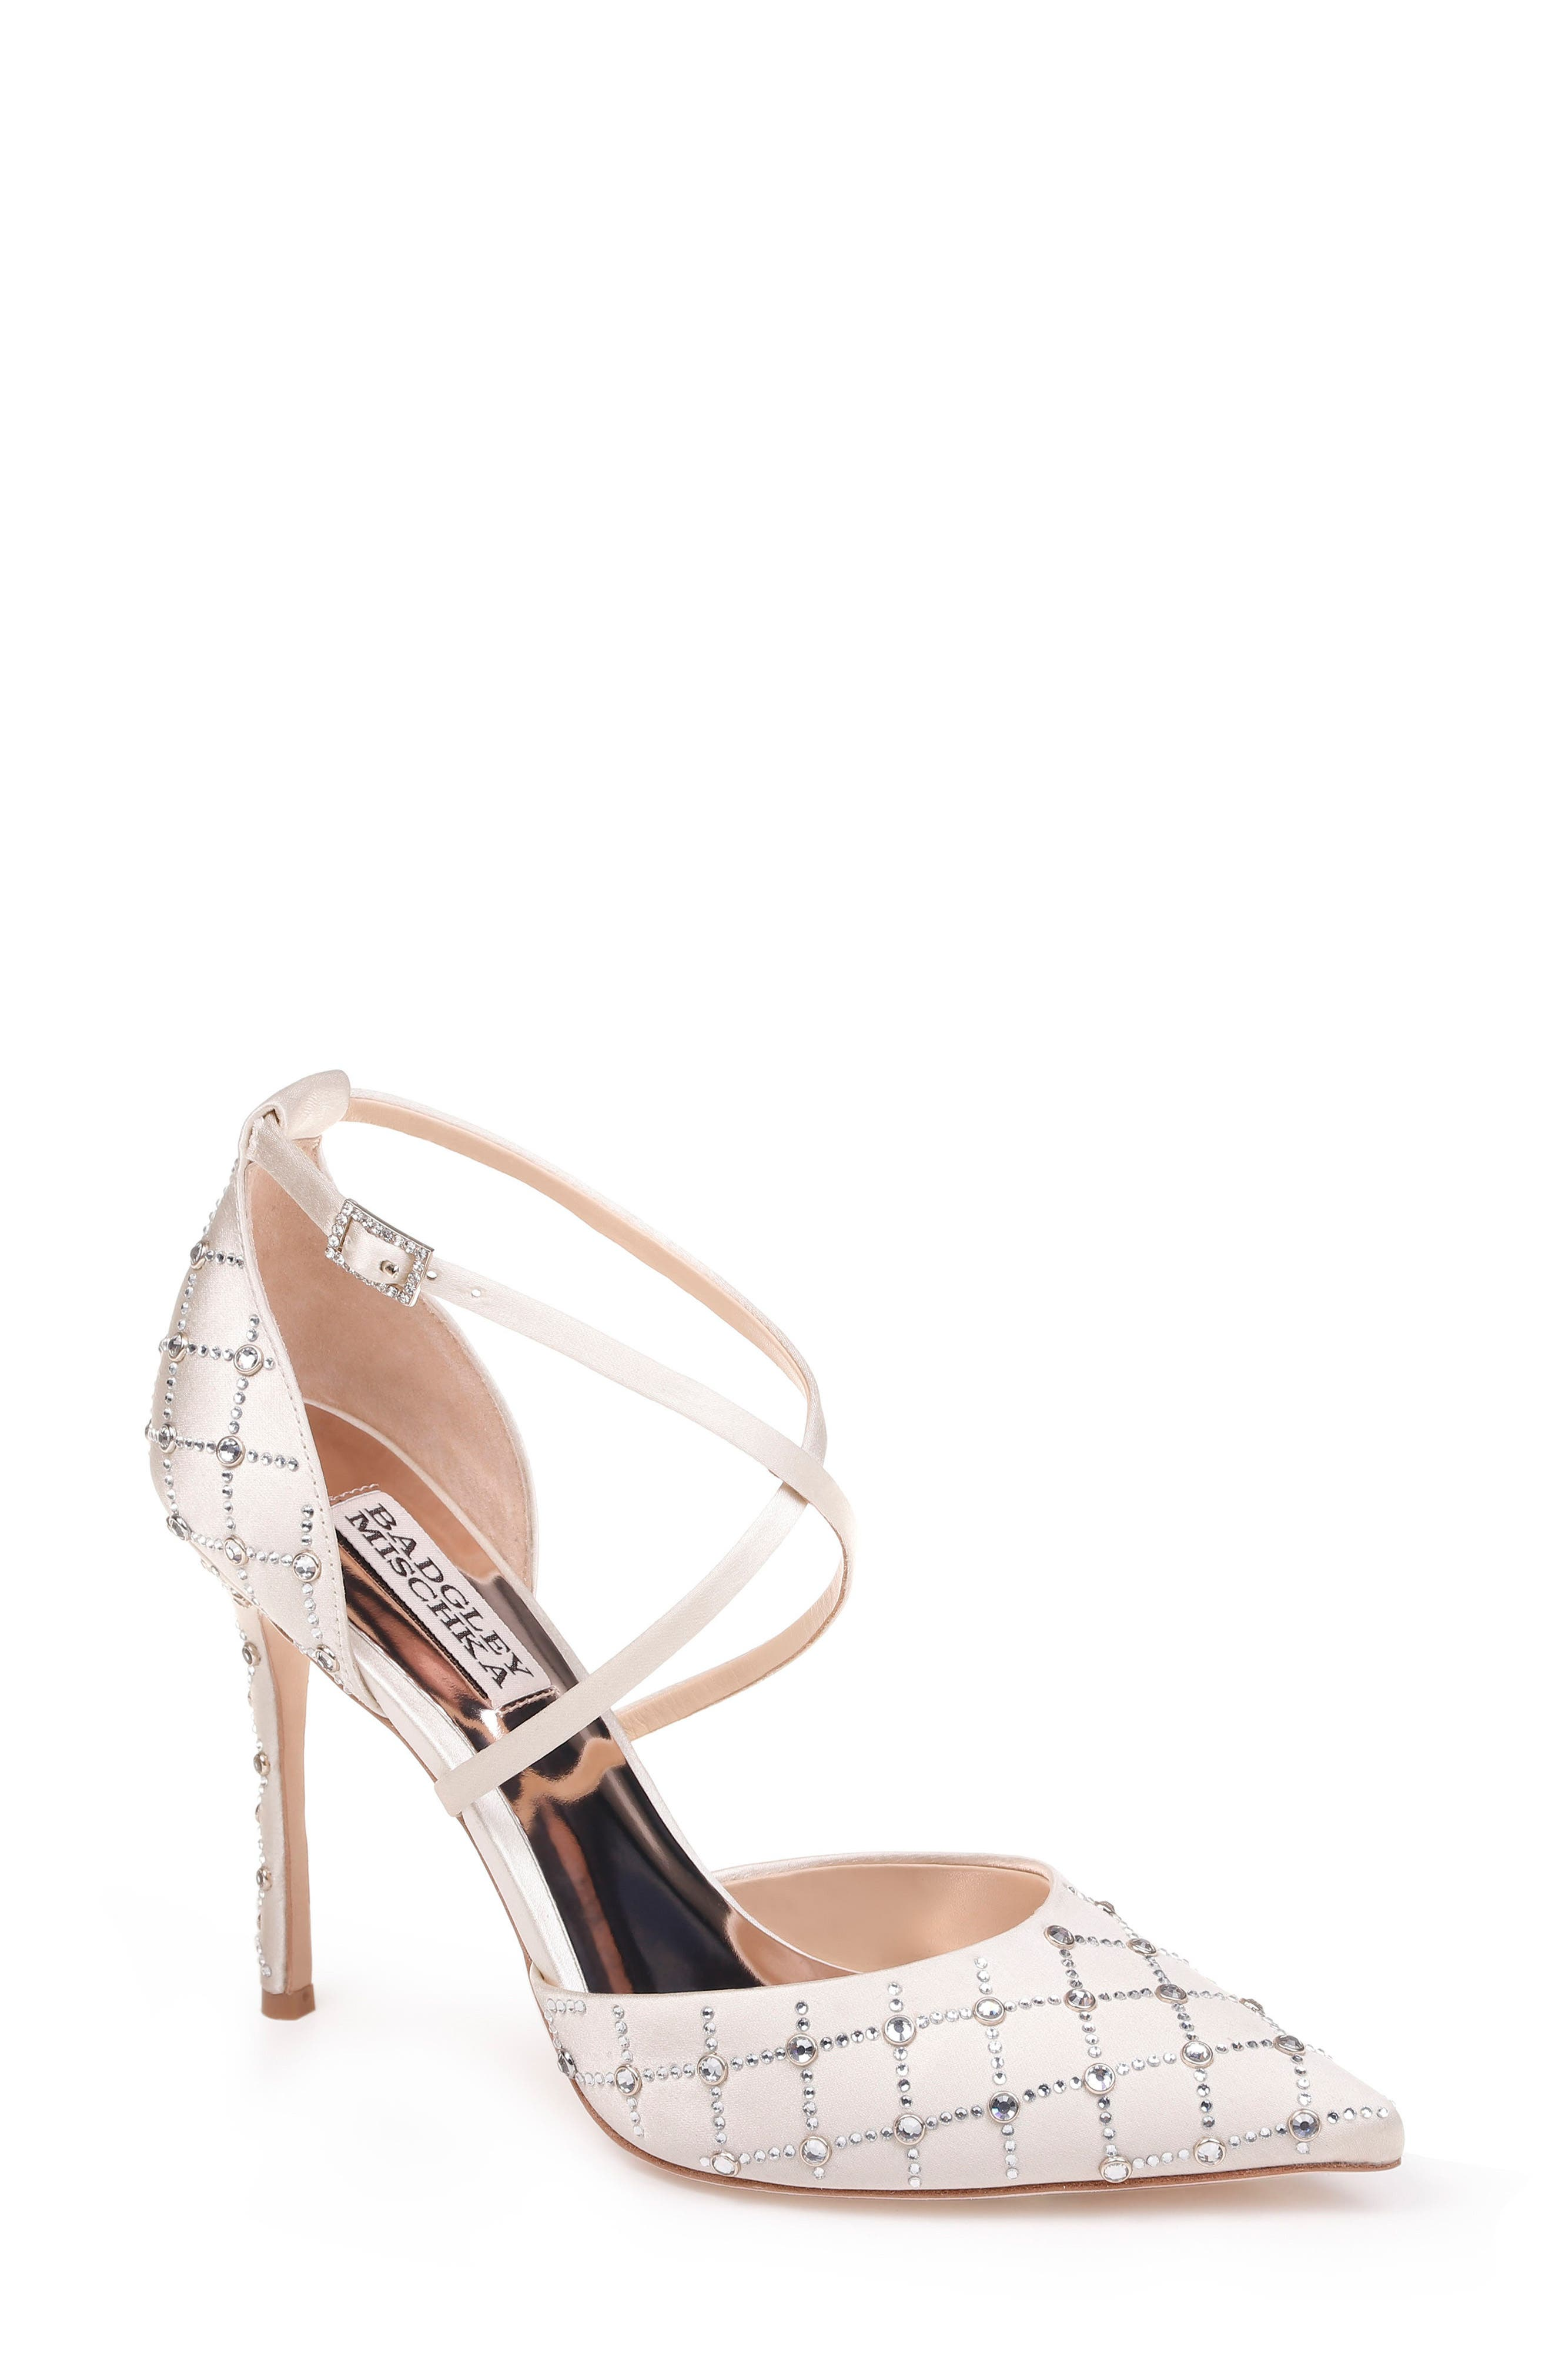 Alternate Image 1 Selected - Badgley Mischka Shiloh Pointy Toe Pump (Women)